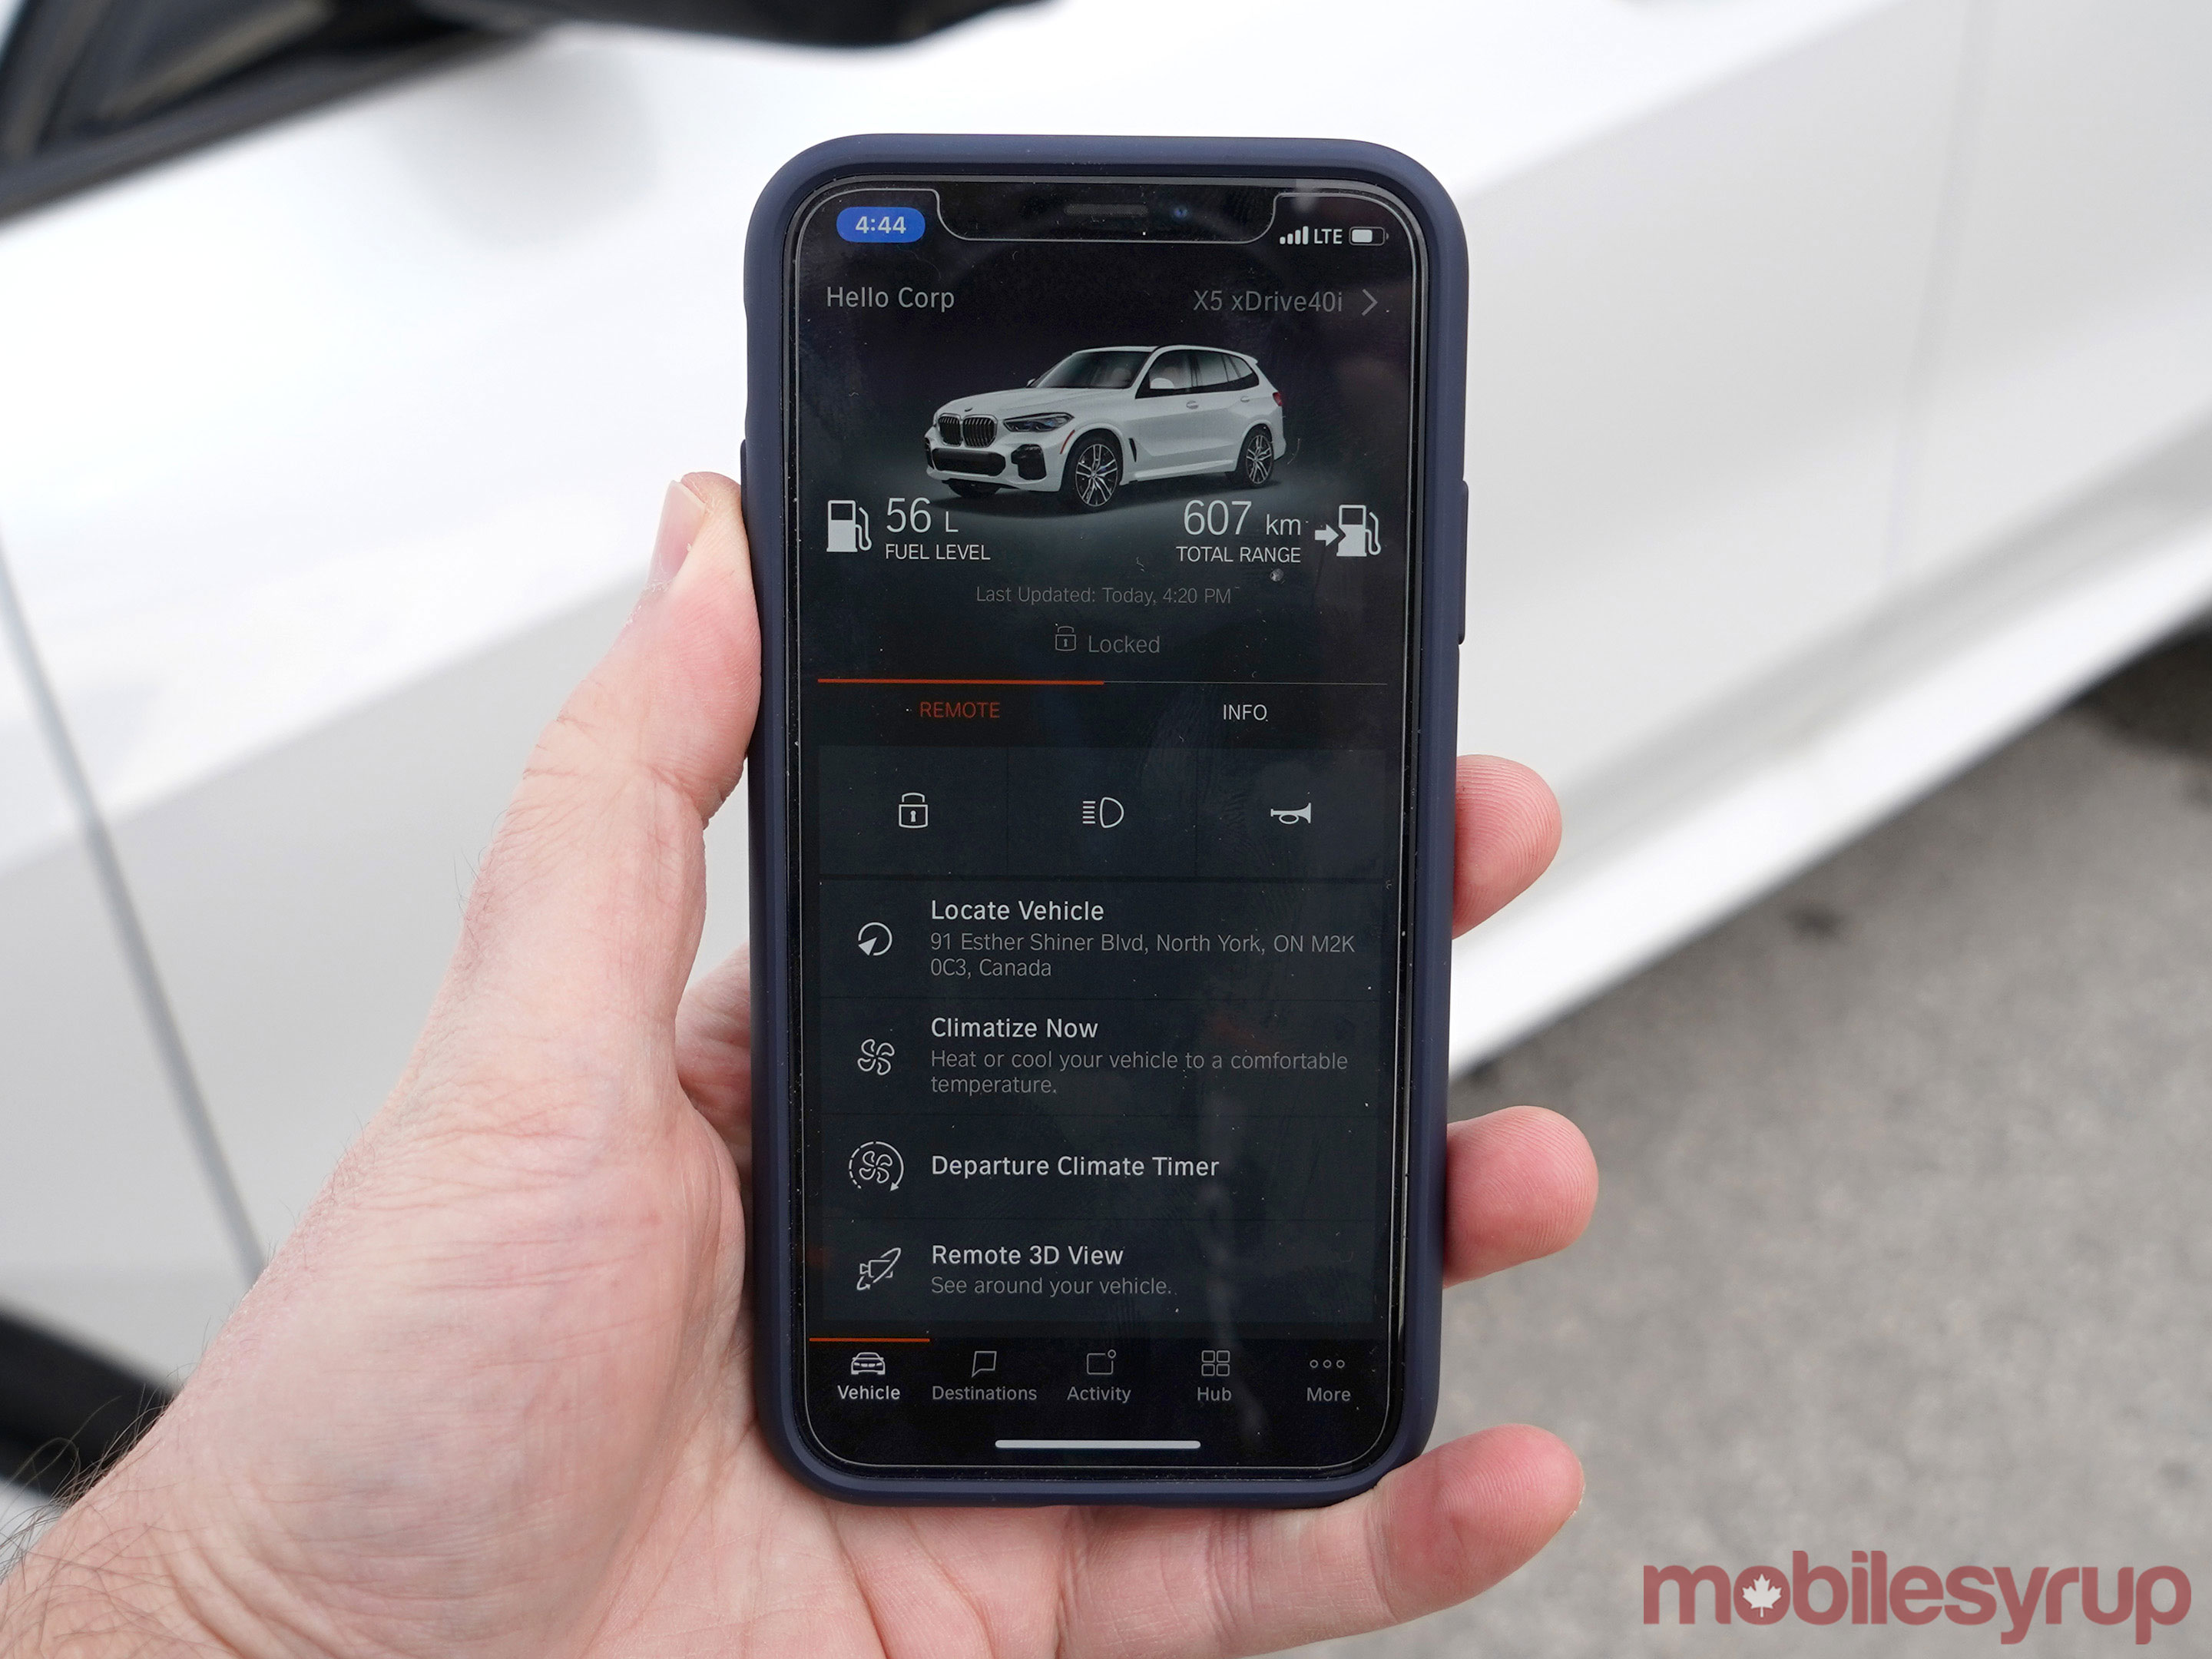 2019 BMW iDrive 7 0 Review: Going deeper and deeper